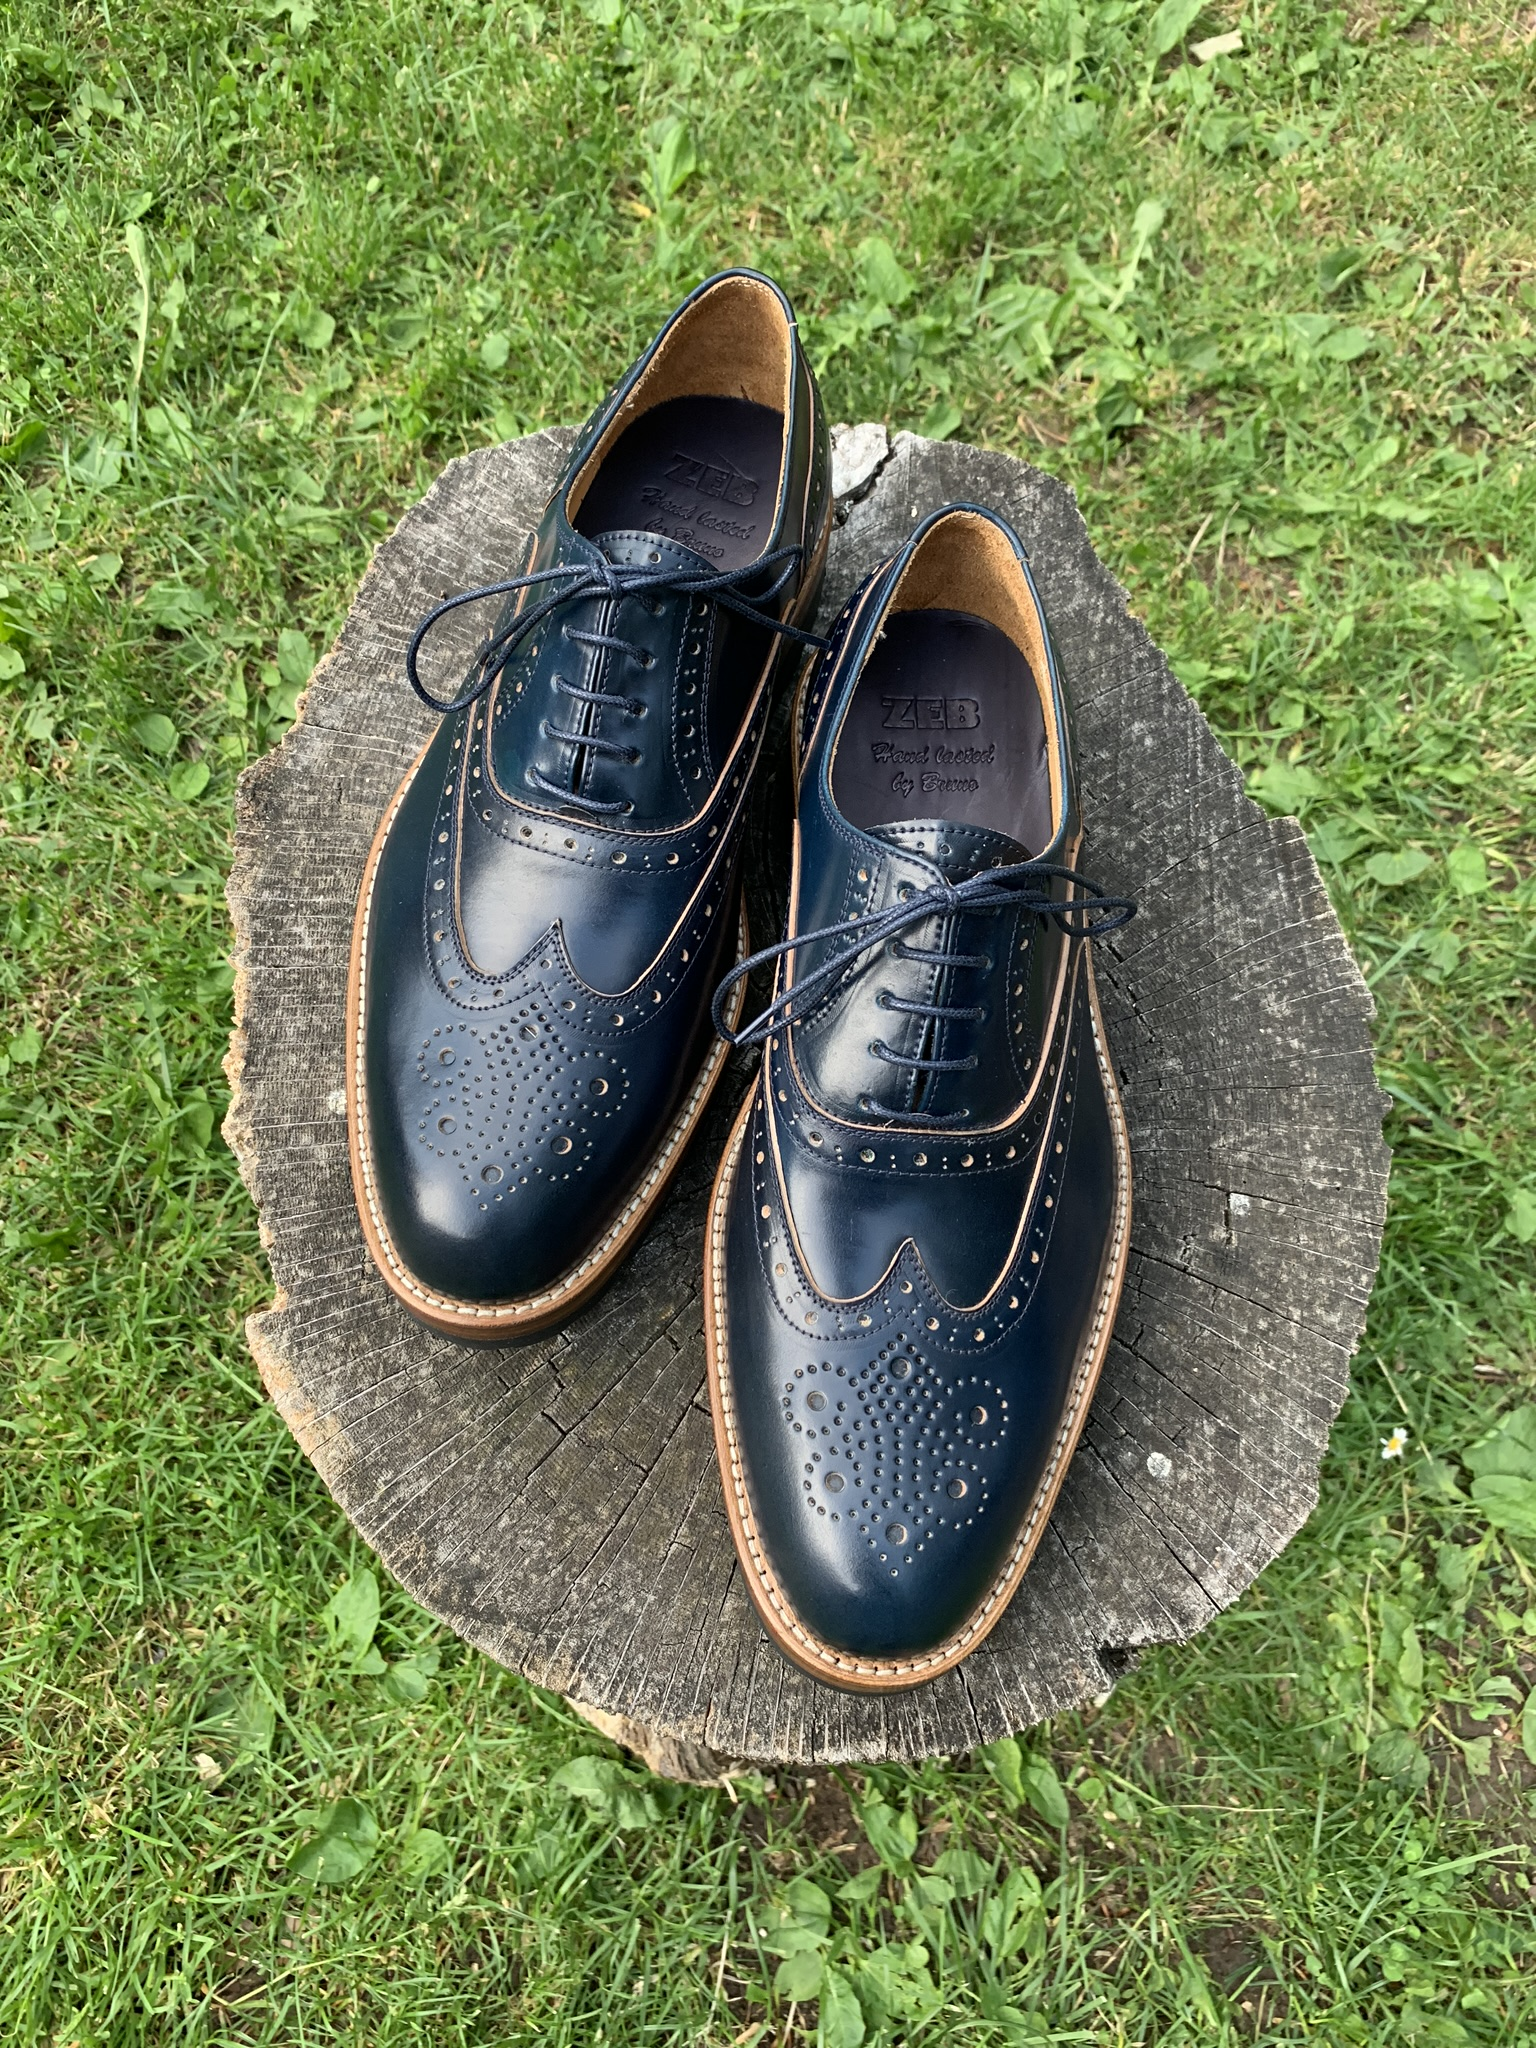 Navy Shell Cordovan Oxford 7.jpeg